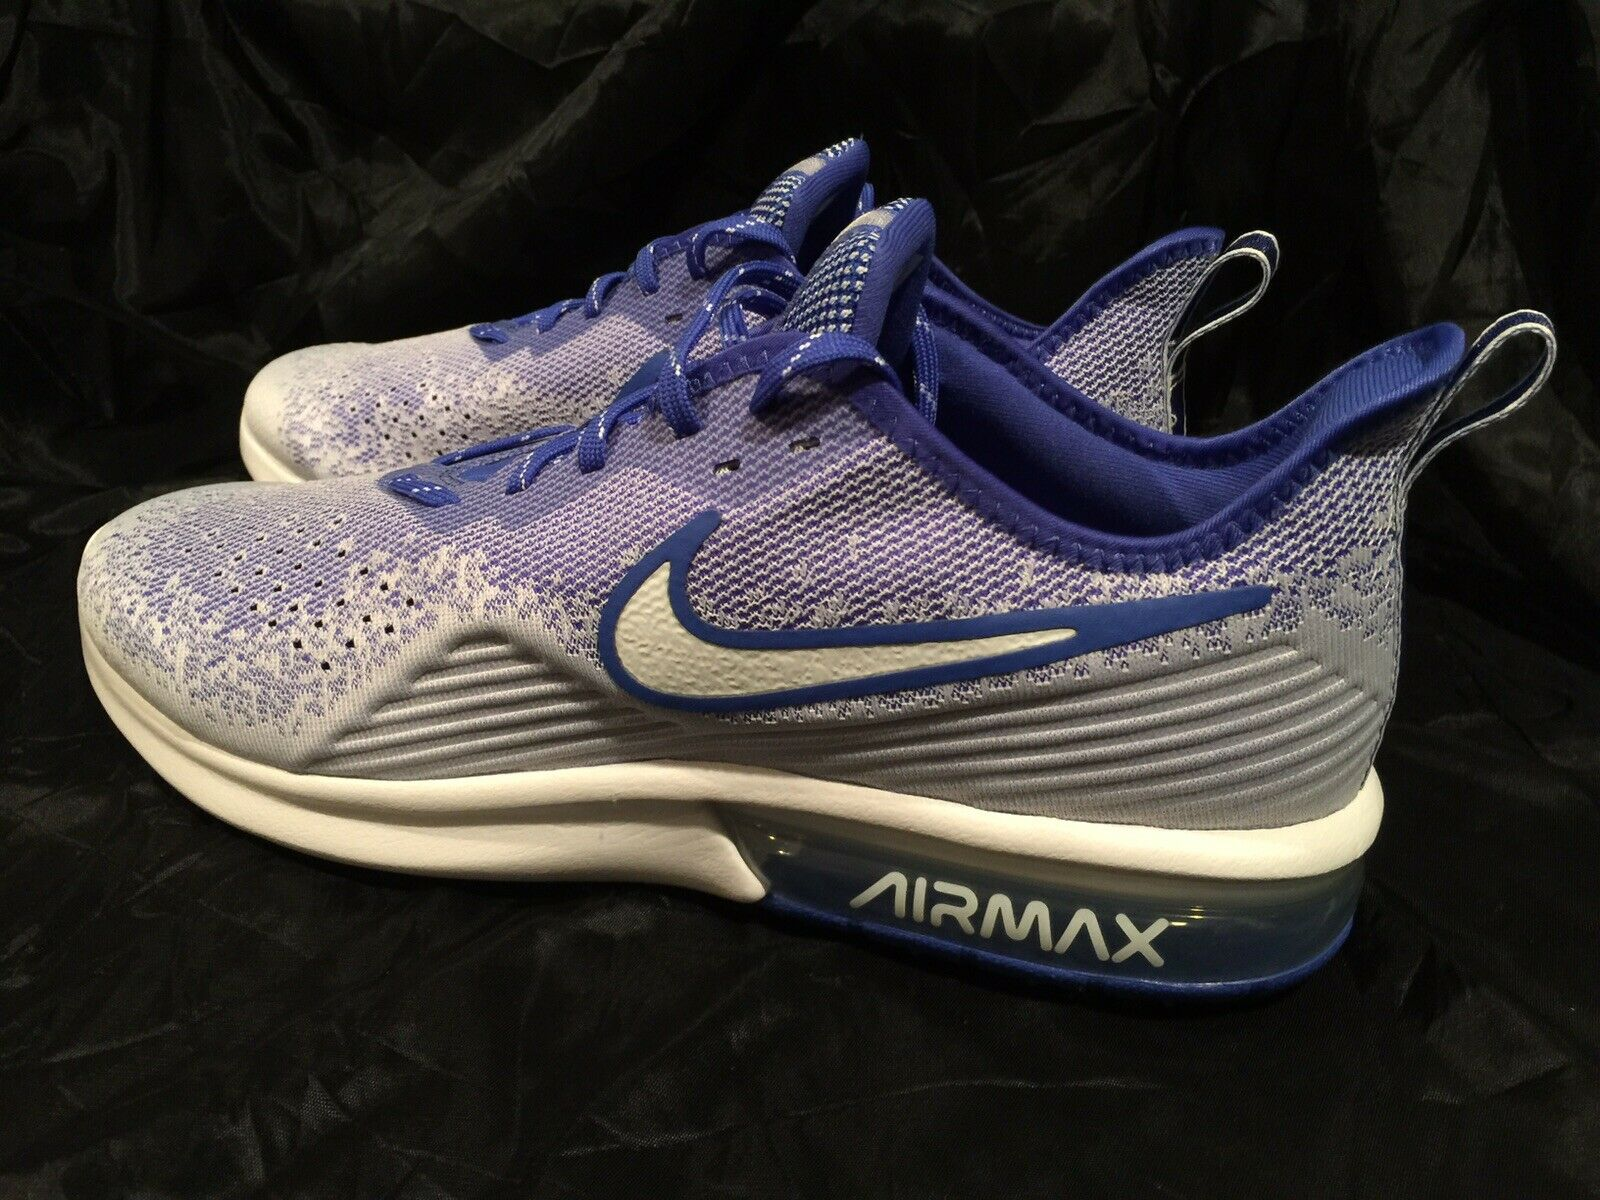 Nike Men's Air Max Sequent 4 Running shoes White bluee Size 13 AO4485-104